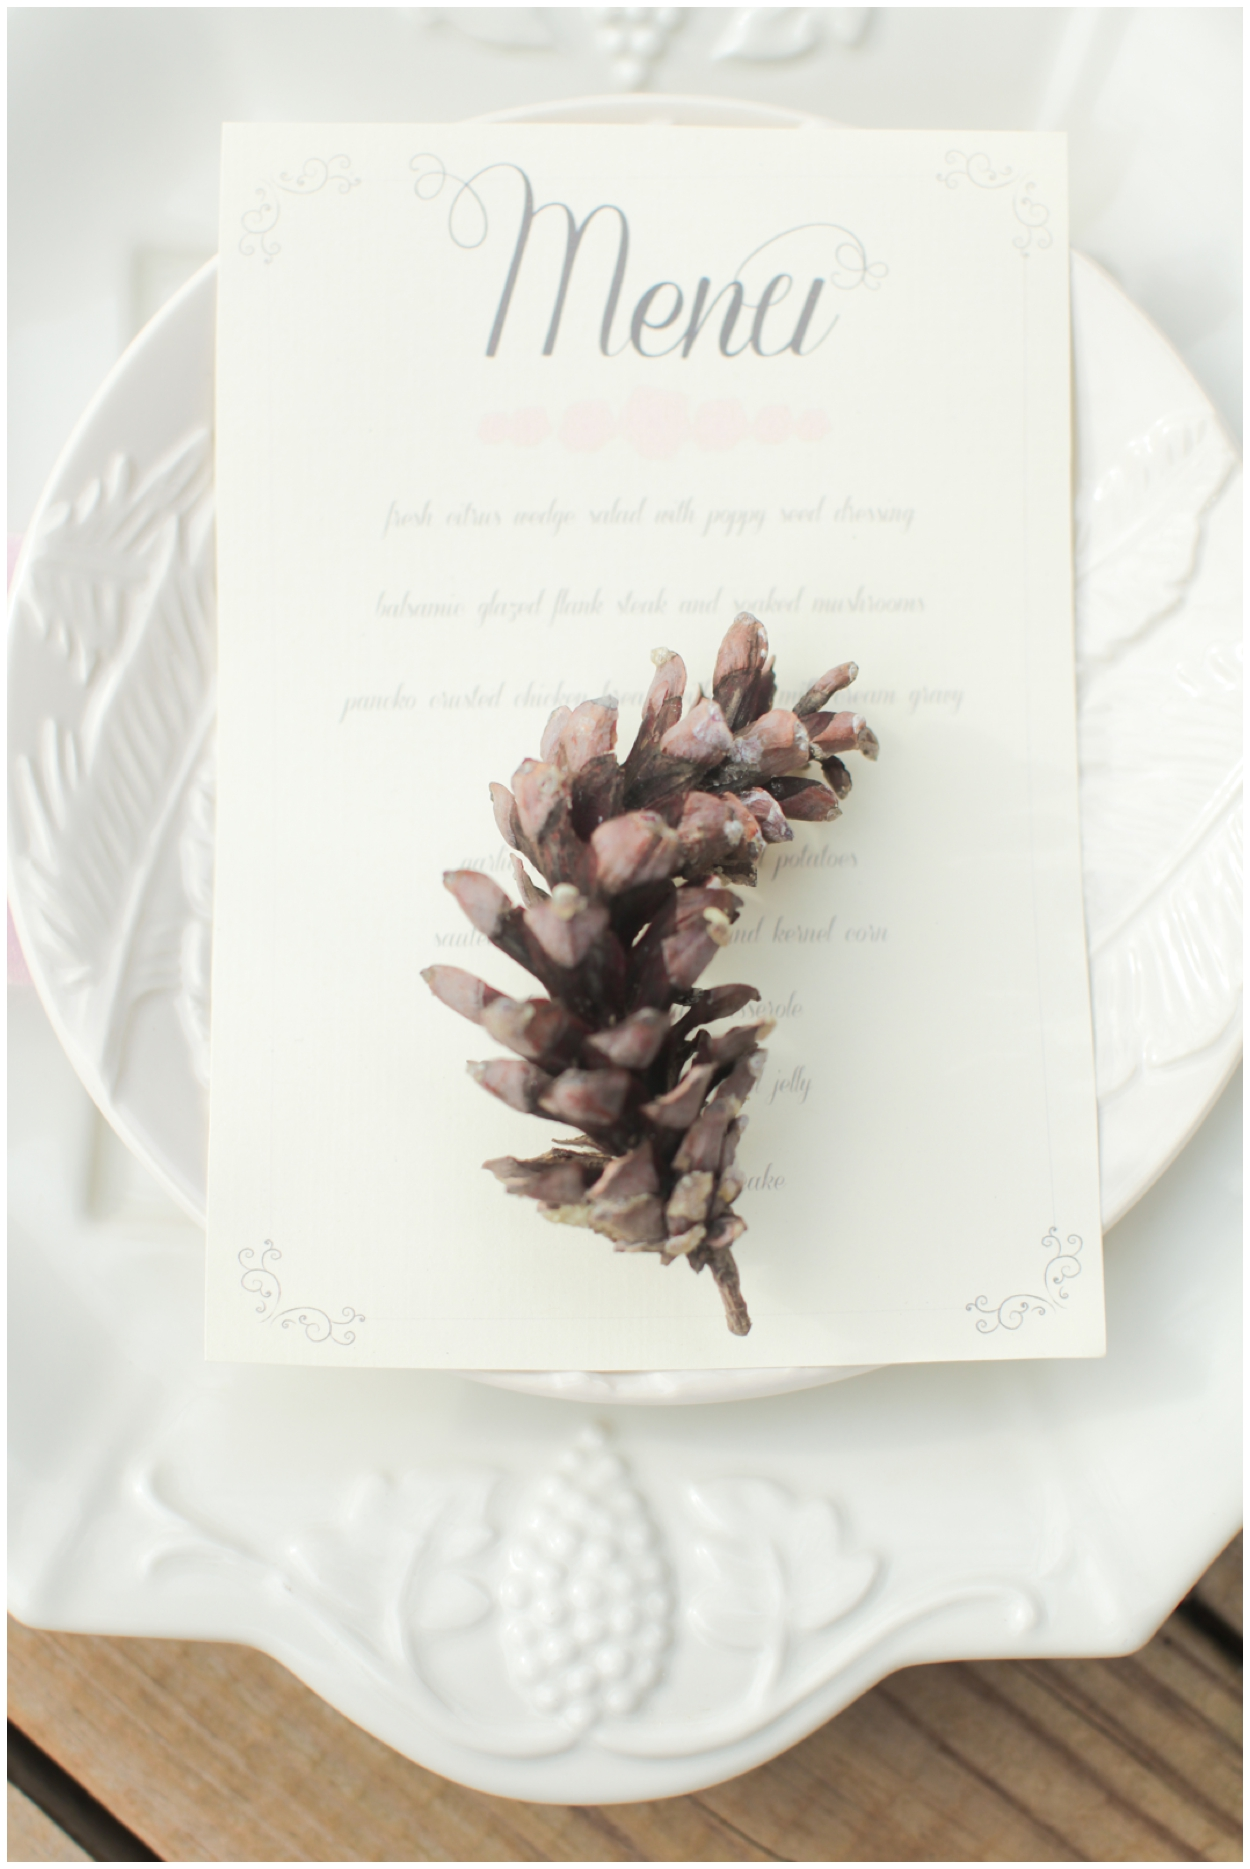 DIY Menu - Wedding Menu by Jordan Brittley